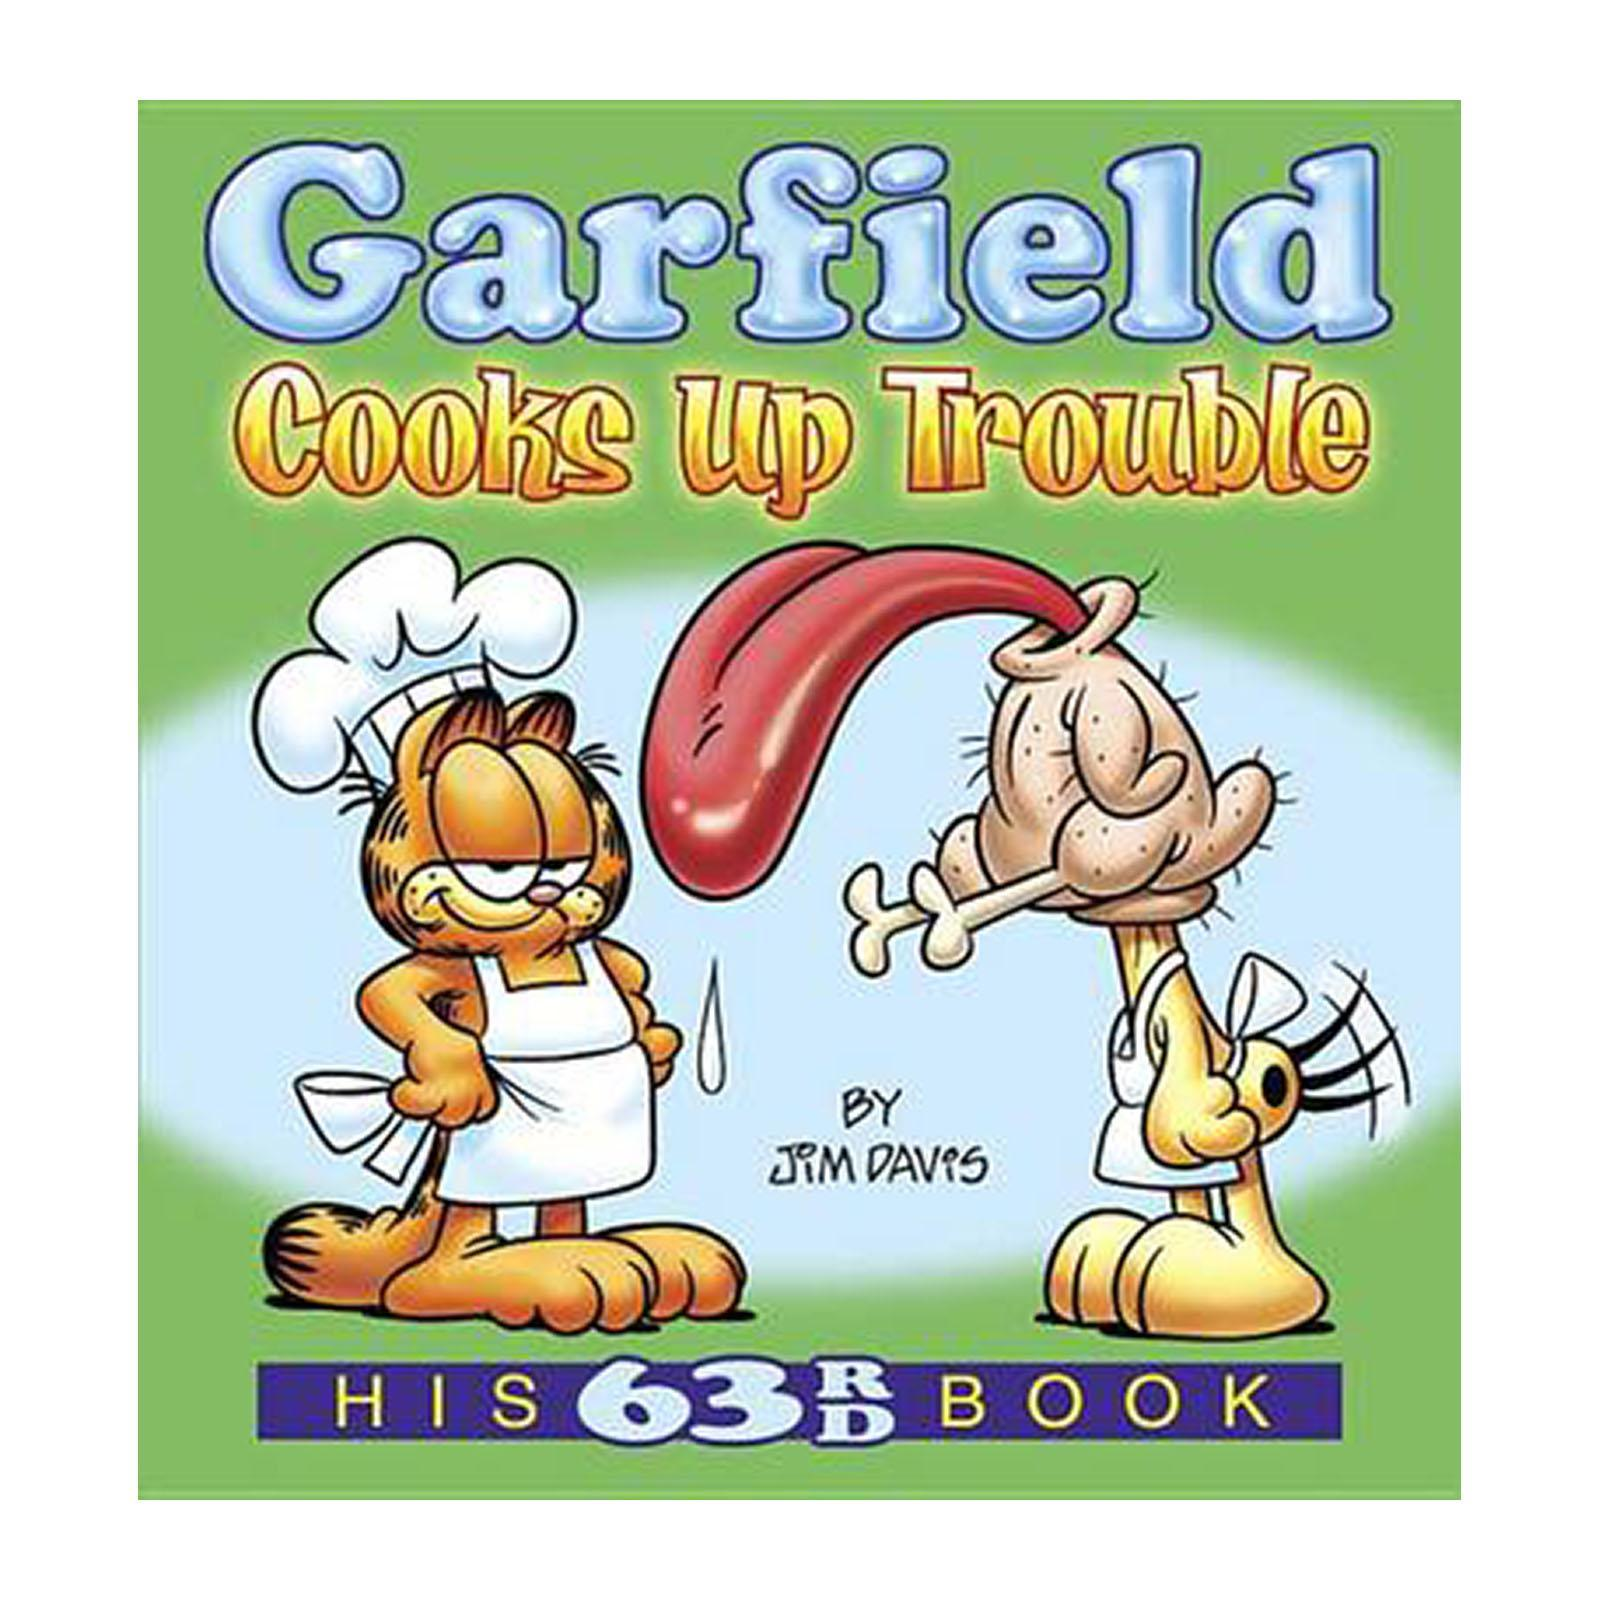 Garfield Cooks Up Trouble: His 63Rd Book (Paperback)